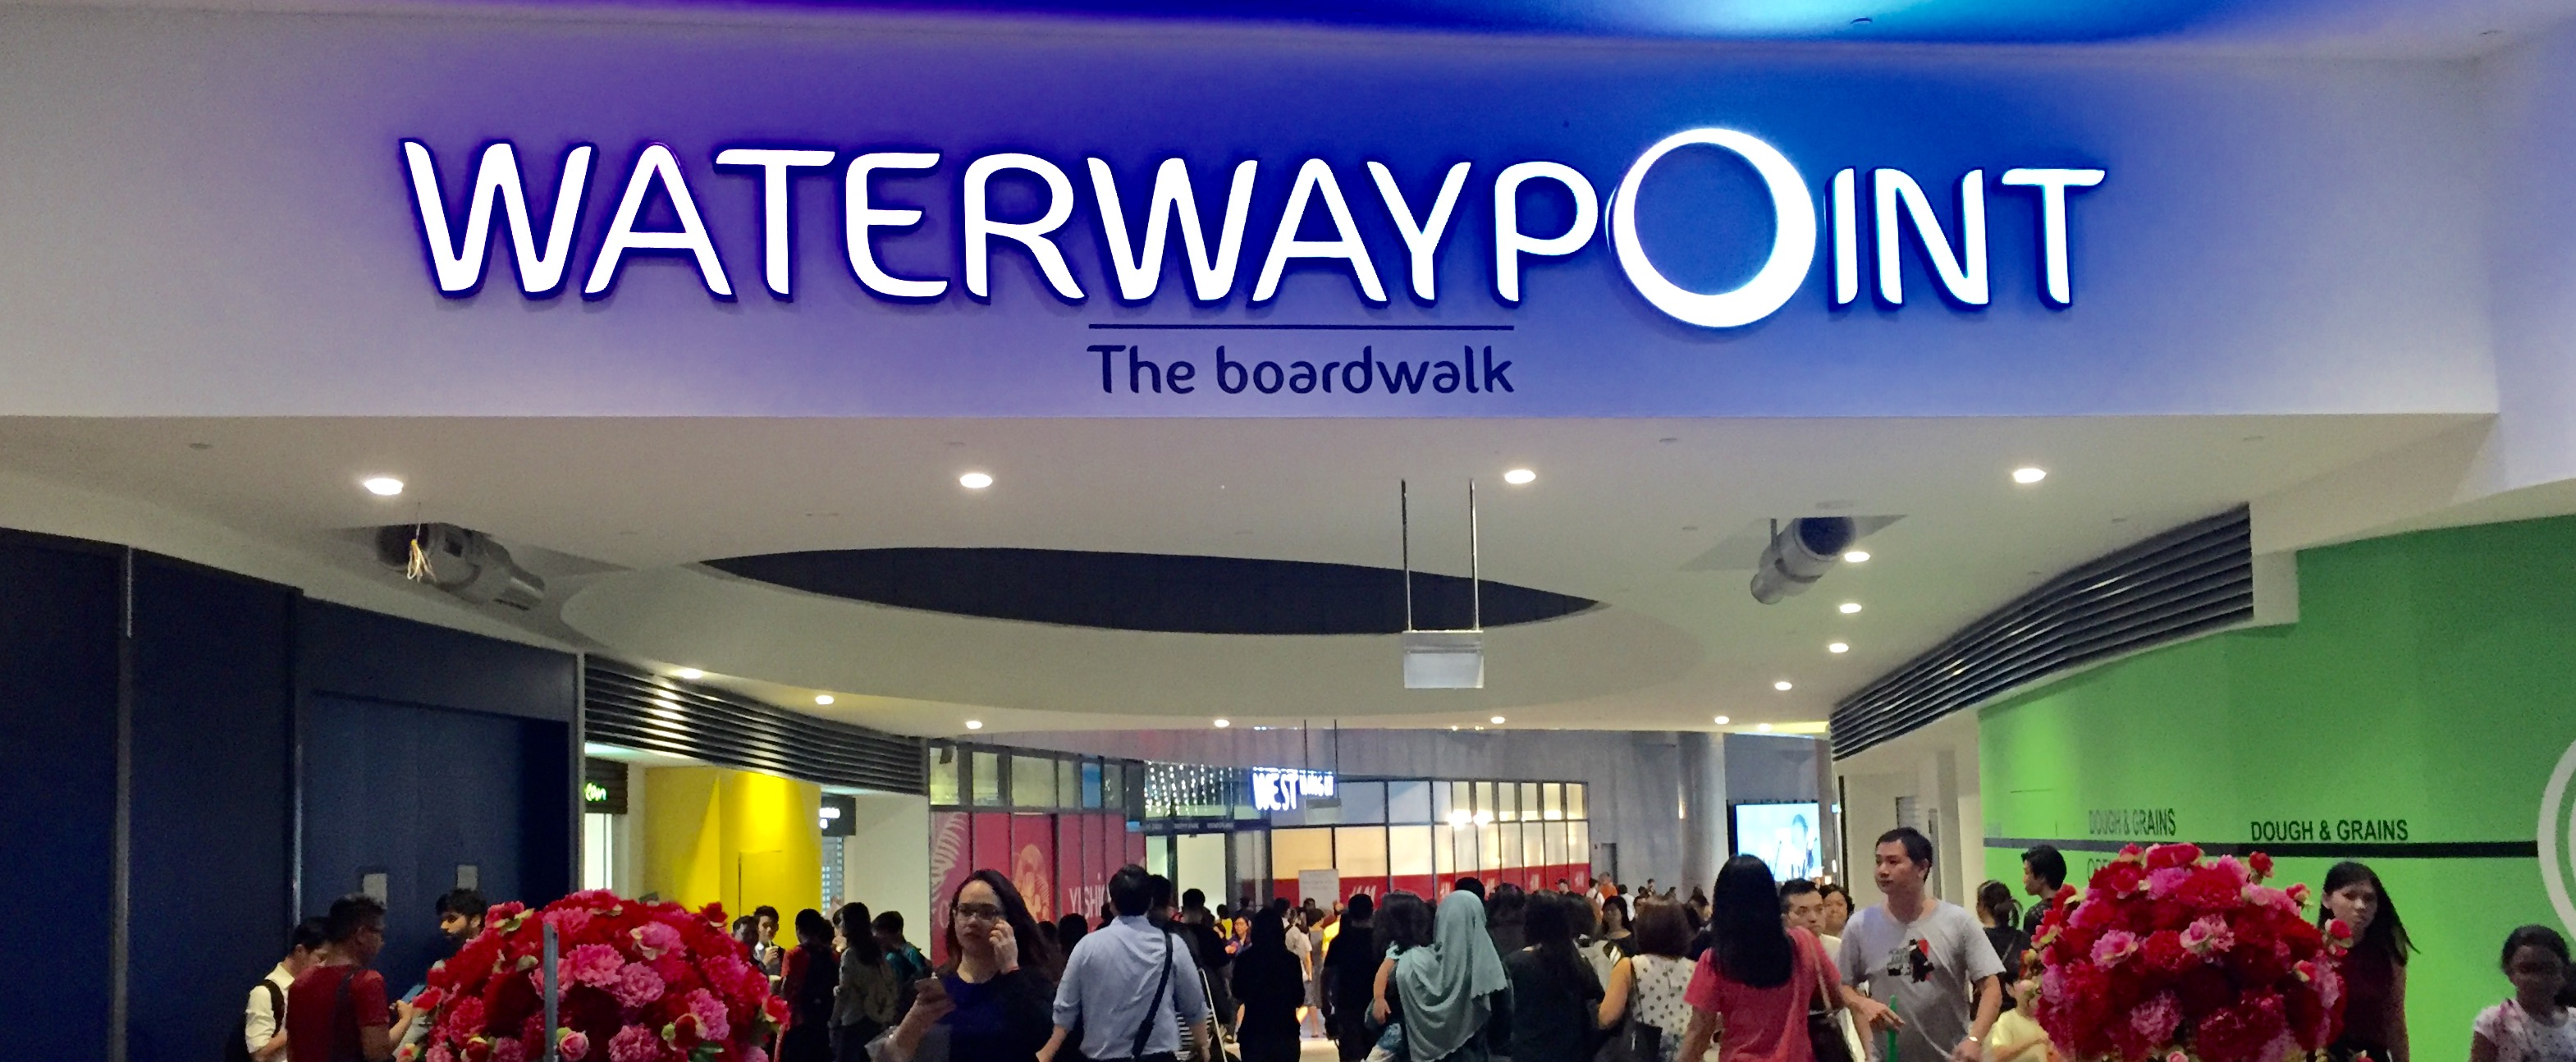 Waterway Point Opening - 18 January 2016